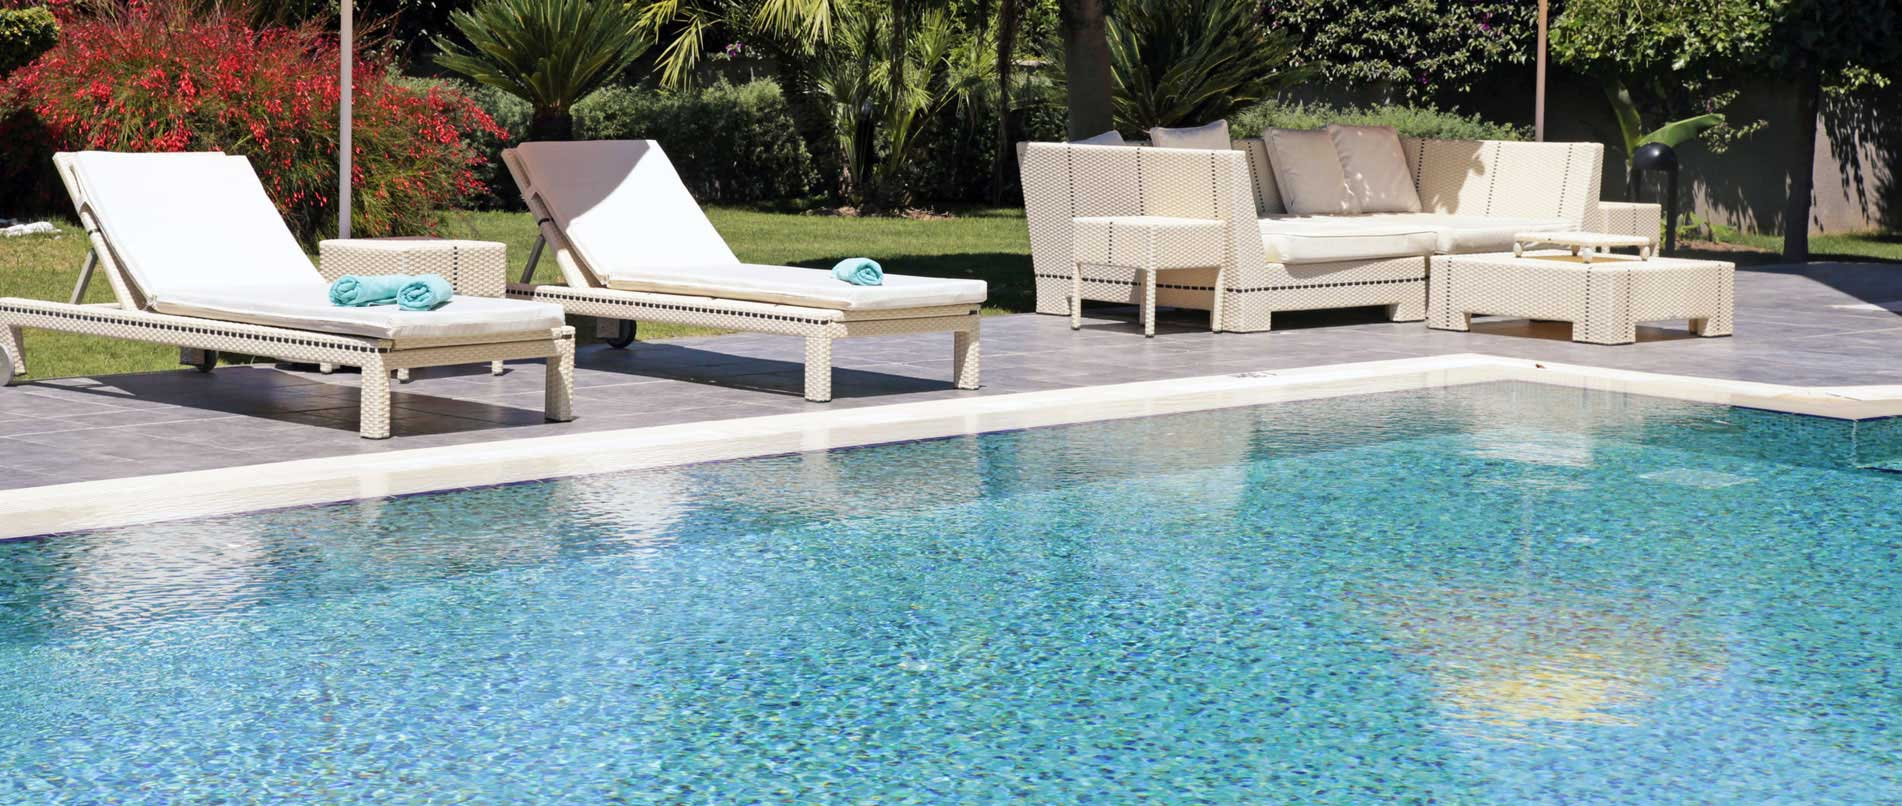 your conciergerie - swimming pool maintenace of your second house, holiday residence in the gard